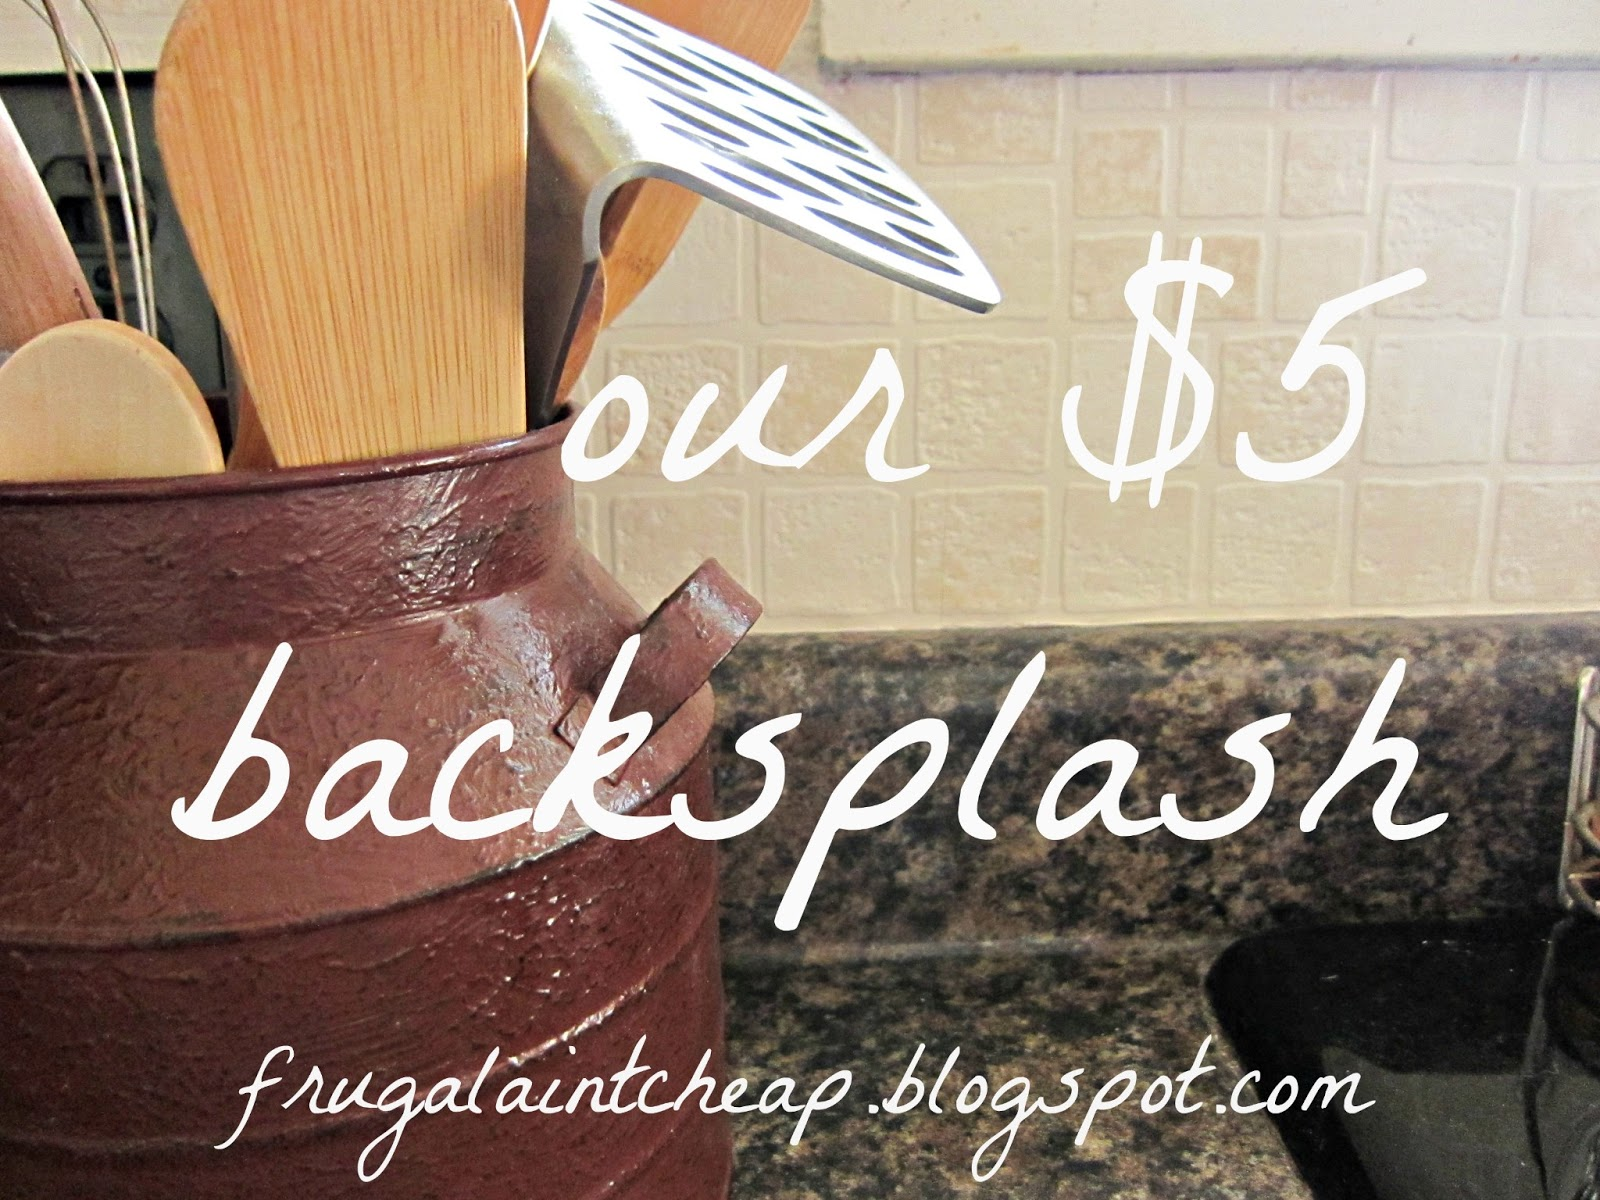 Cheap Unique Backsplash Ideas Frugal Ain 39t Cheap Kitchen Backsplash Great For Renters Too